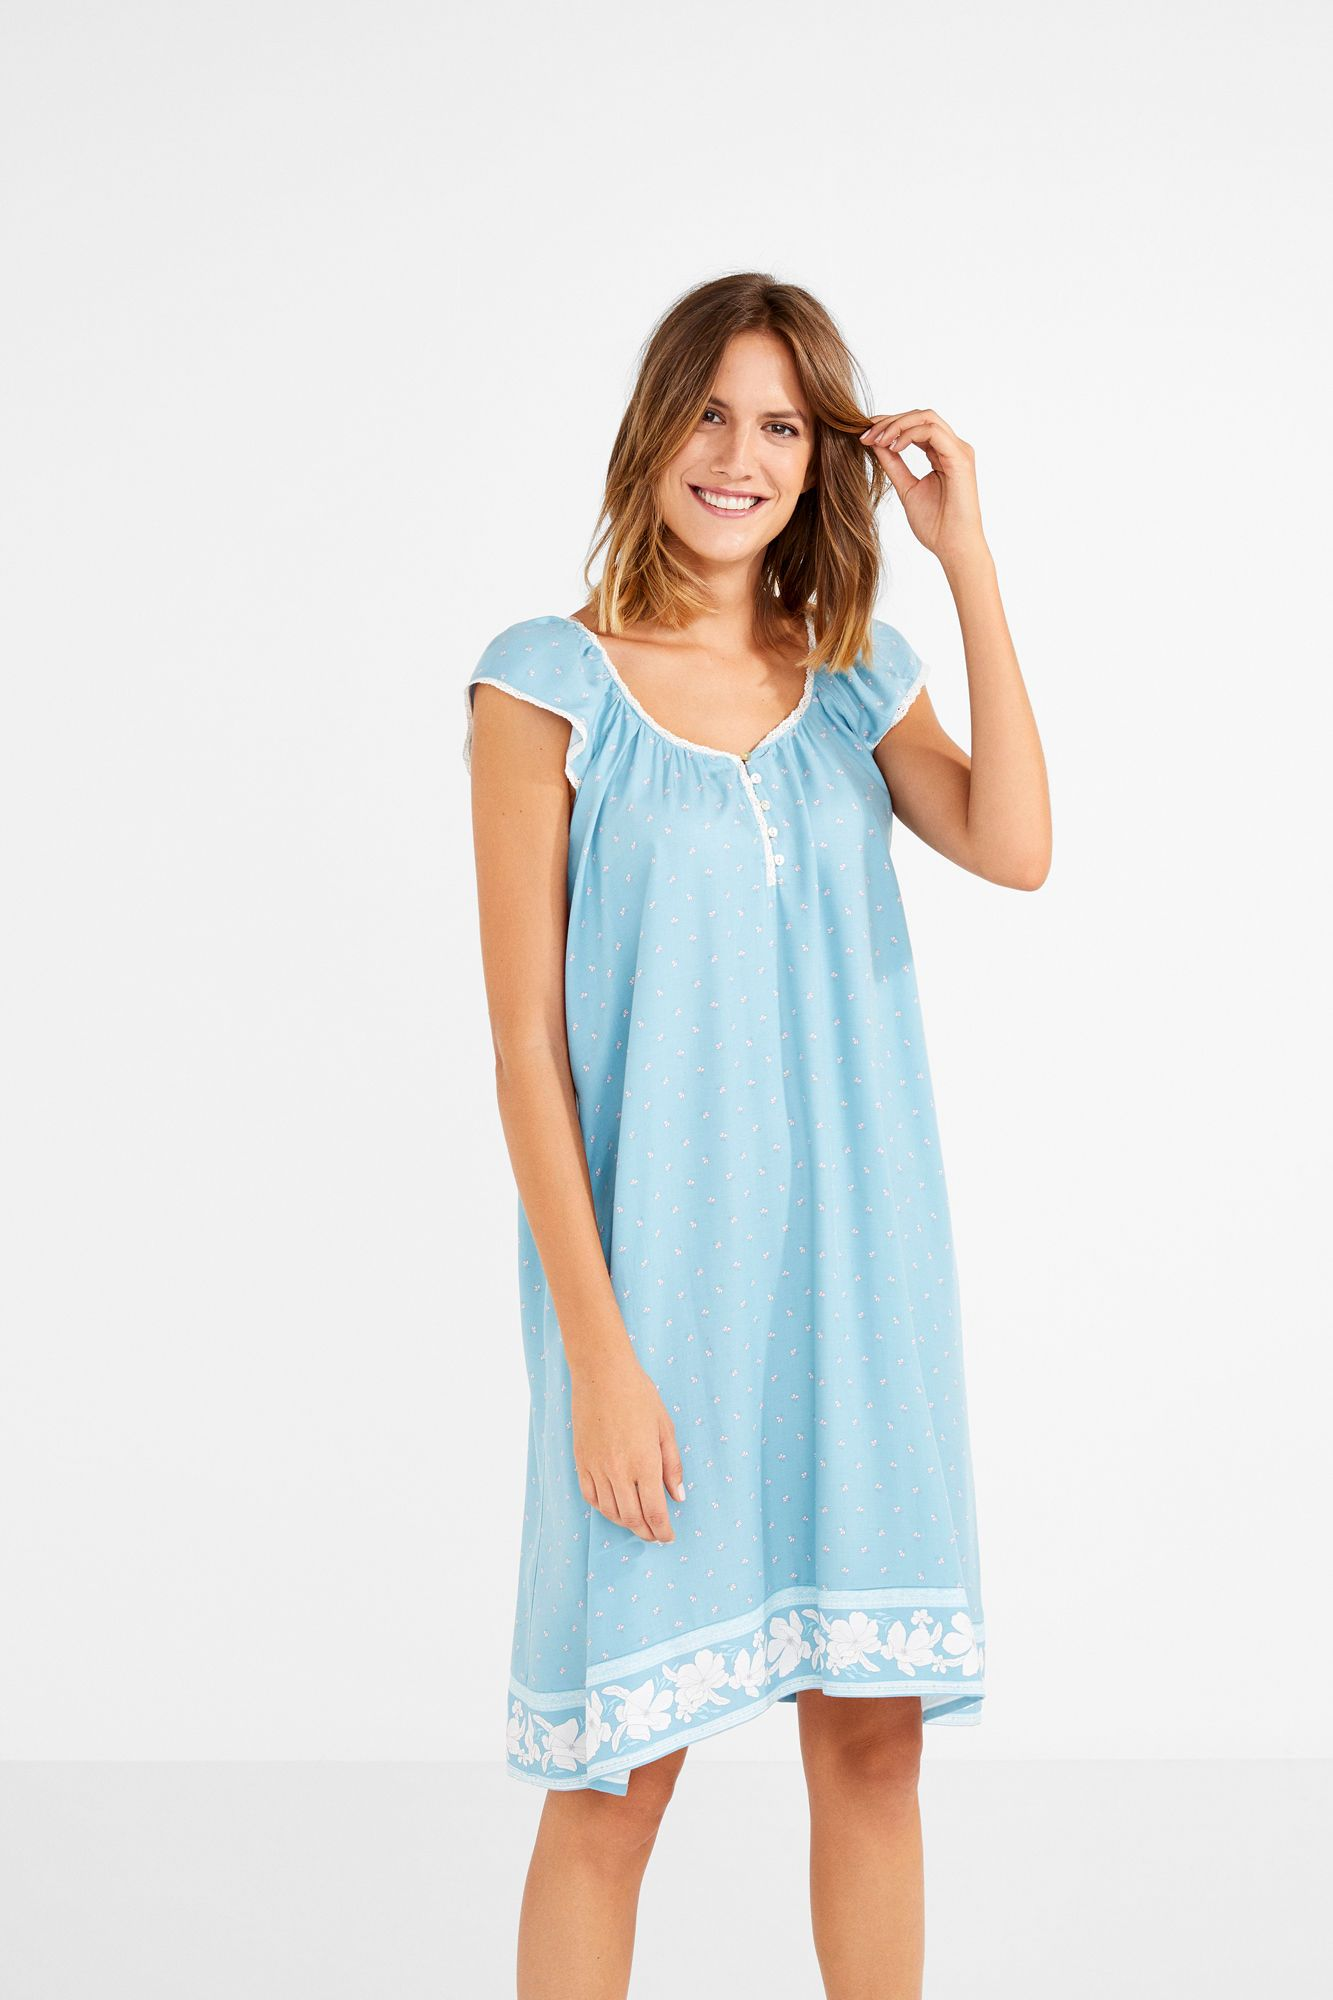 52f400a55bcfe Camisón de mini flores | sleep wear | Pinterest | How to wear and Sleep